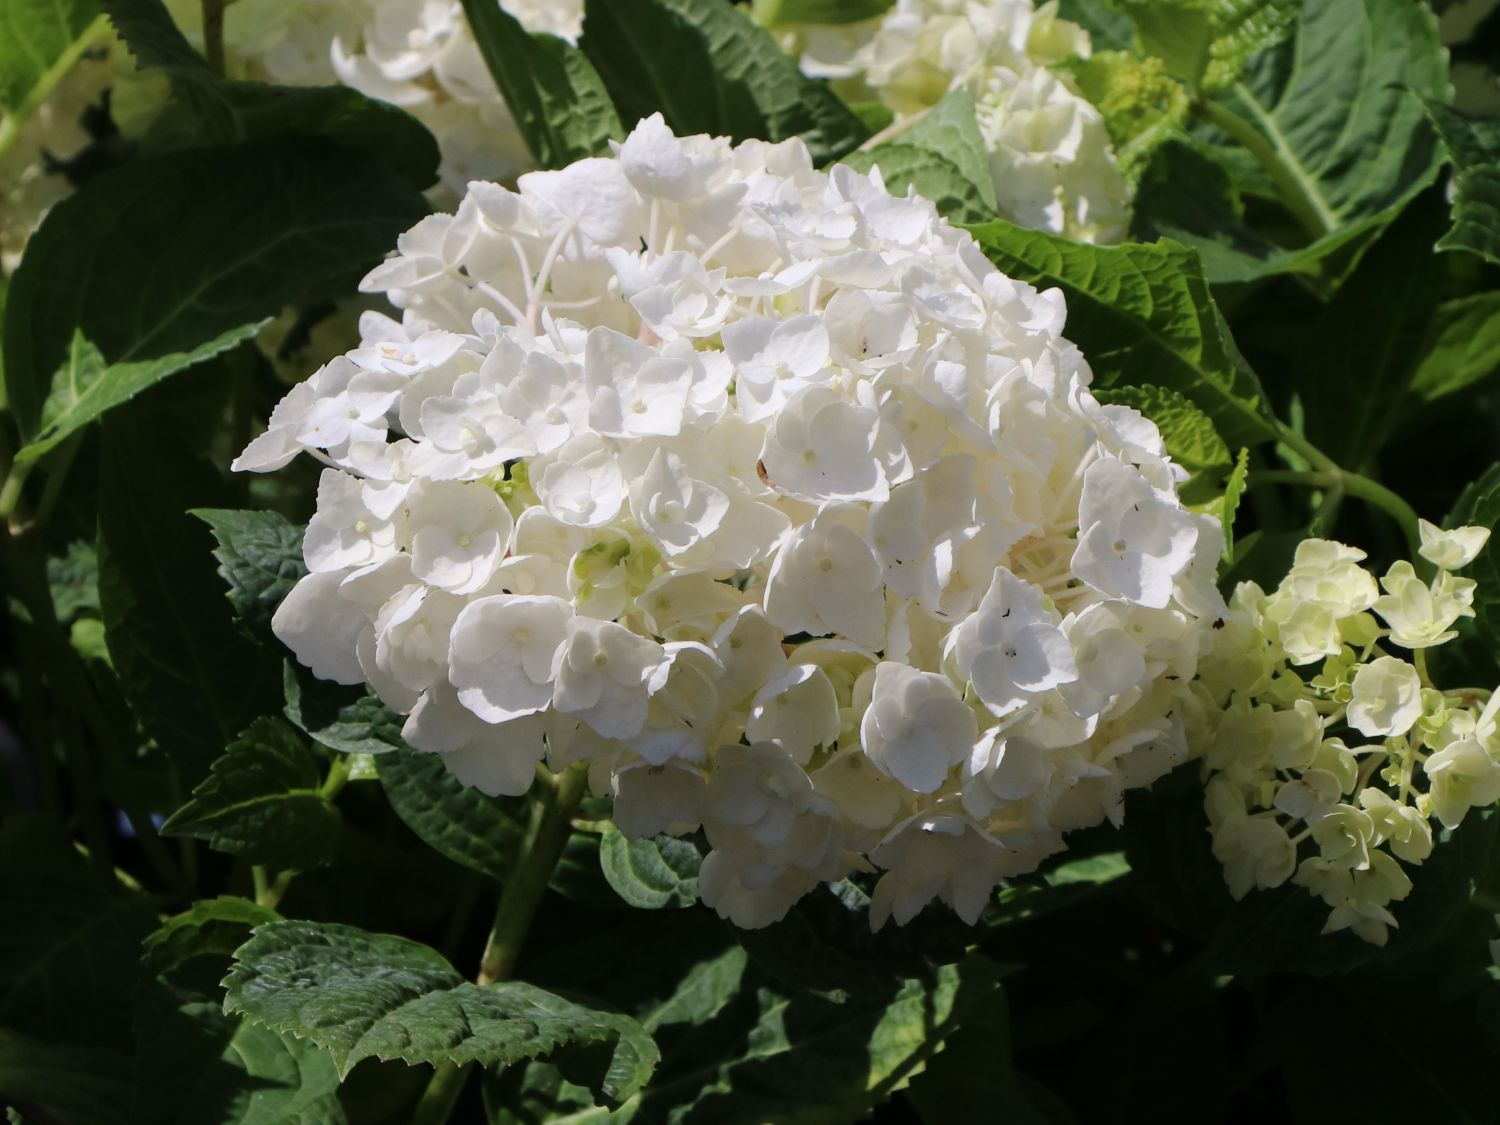 Bauernhortensie The Bride® Ballhortensie Hydrangea macrophy Endless Summer